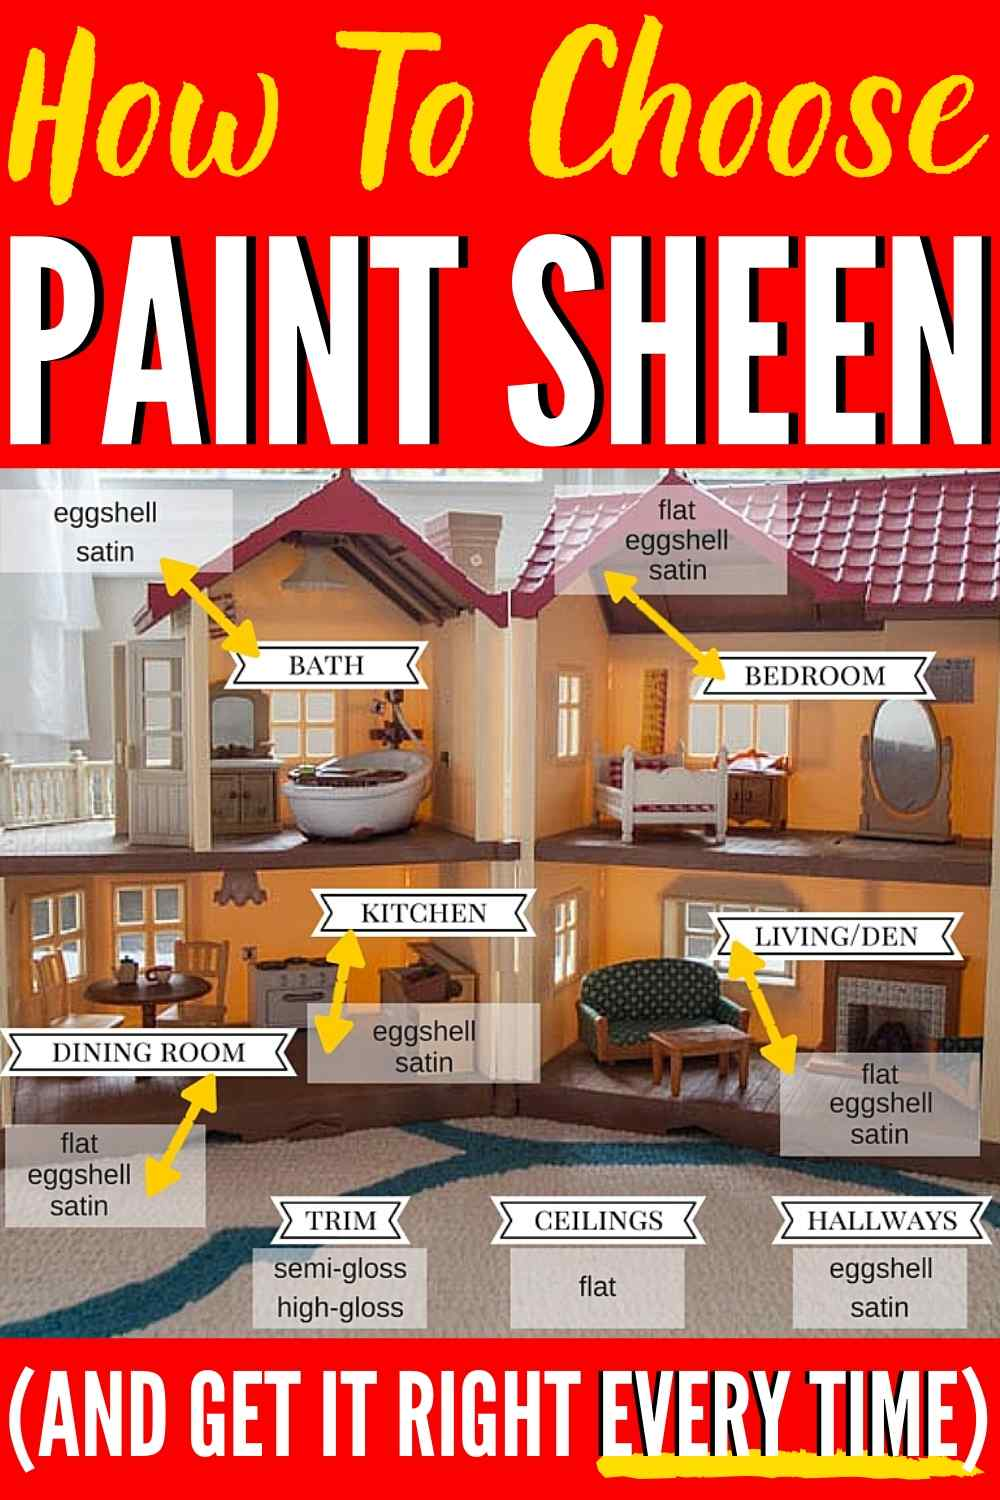 How to Choose a Paint Sheen | The Heathered Nest